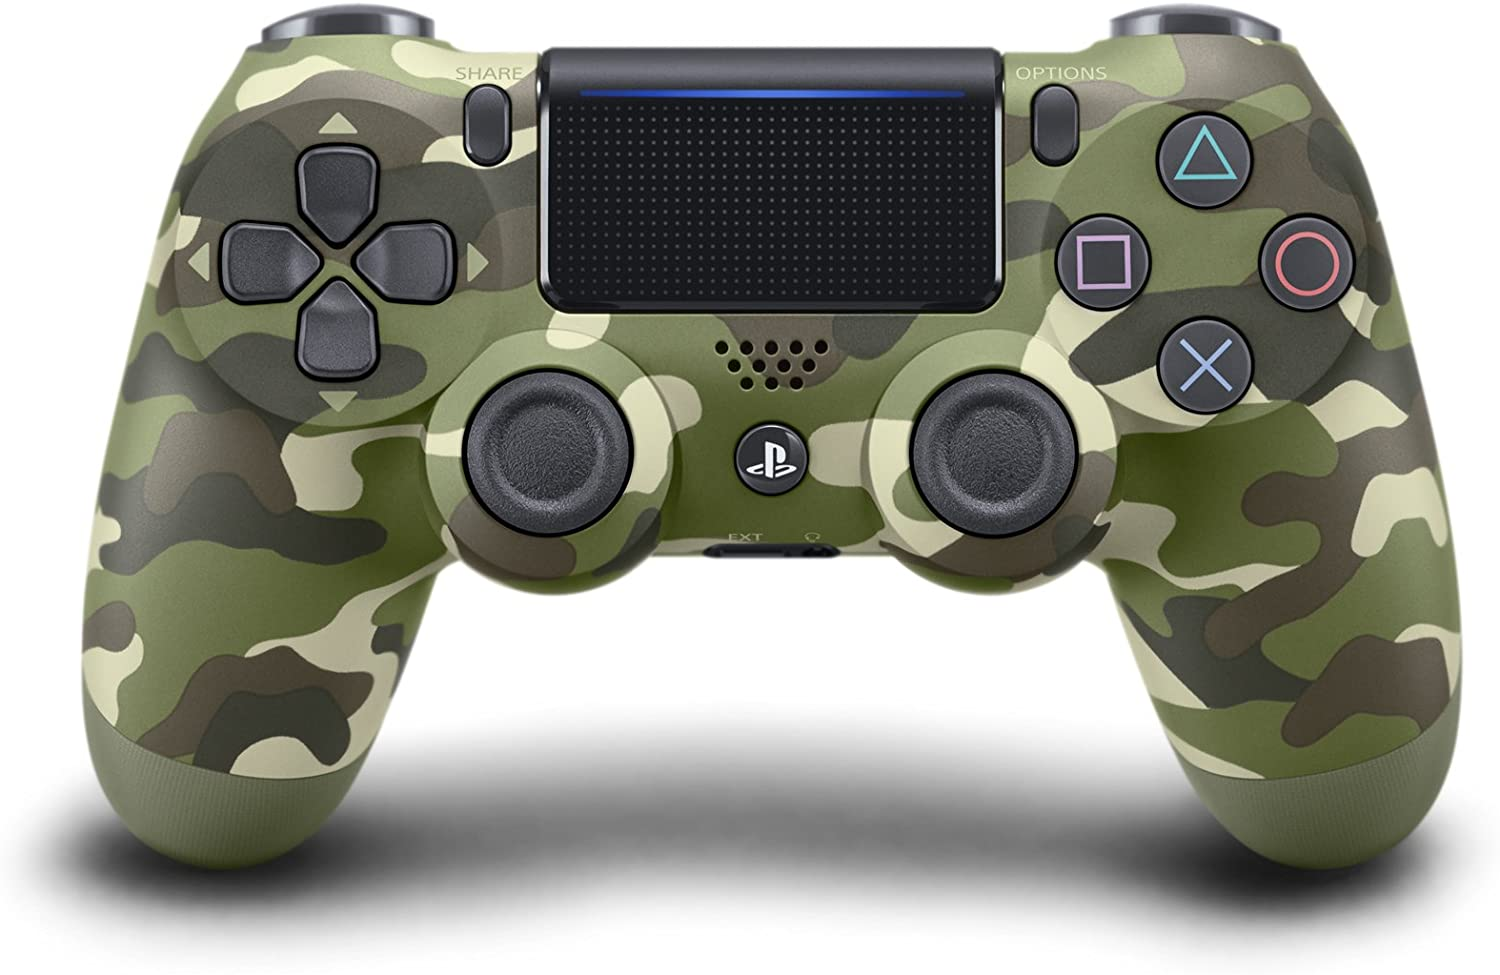 Dualshock 4 Wireless Controller For Playstation 4 - Green Camo V2